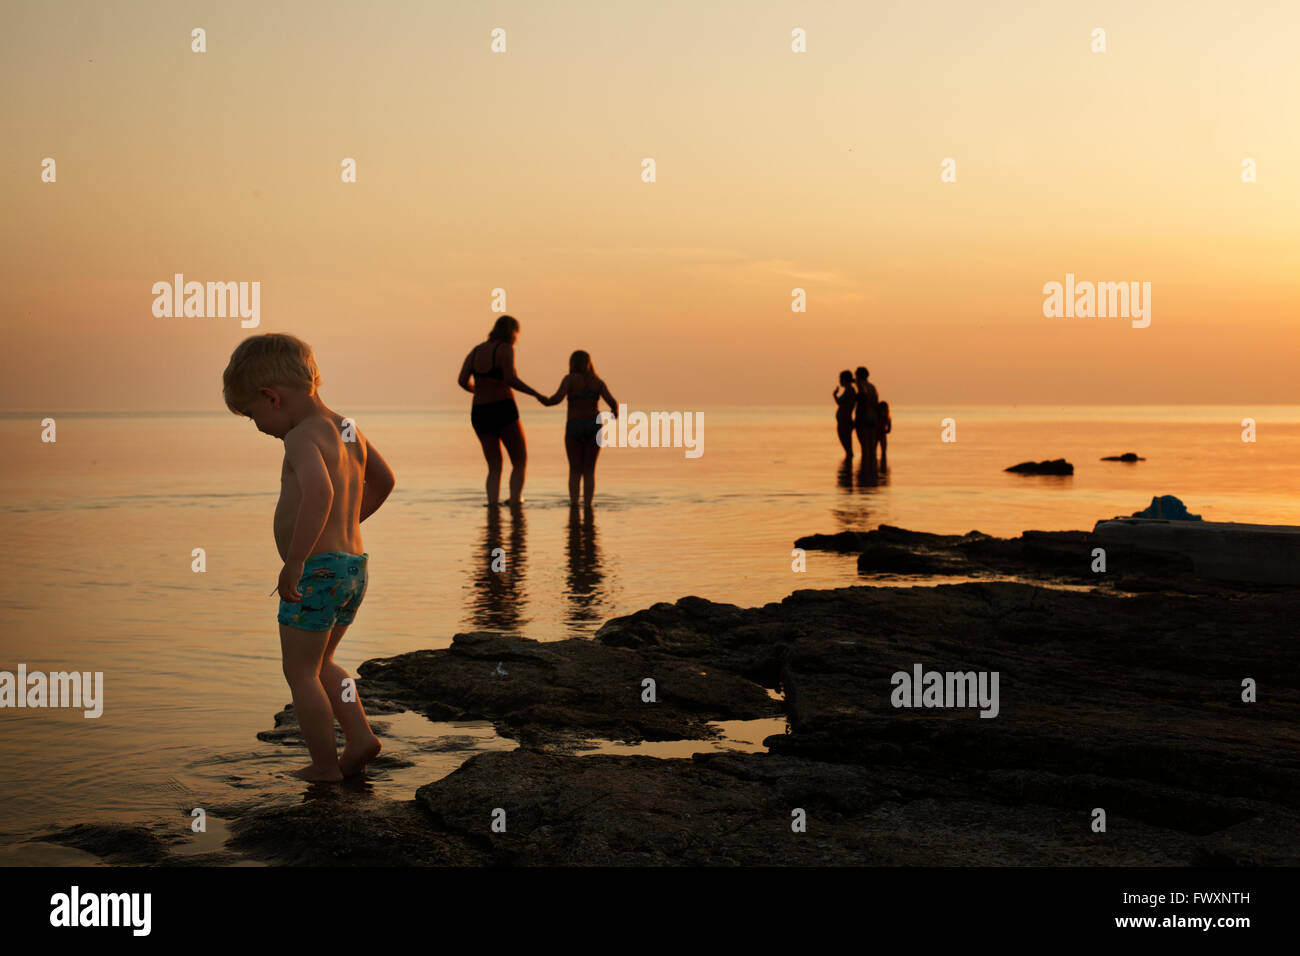 Sweden, Gotland, Faro, Boy (2-3) with family on beach at dusk - Stock Image